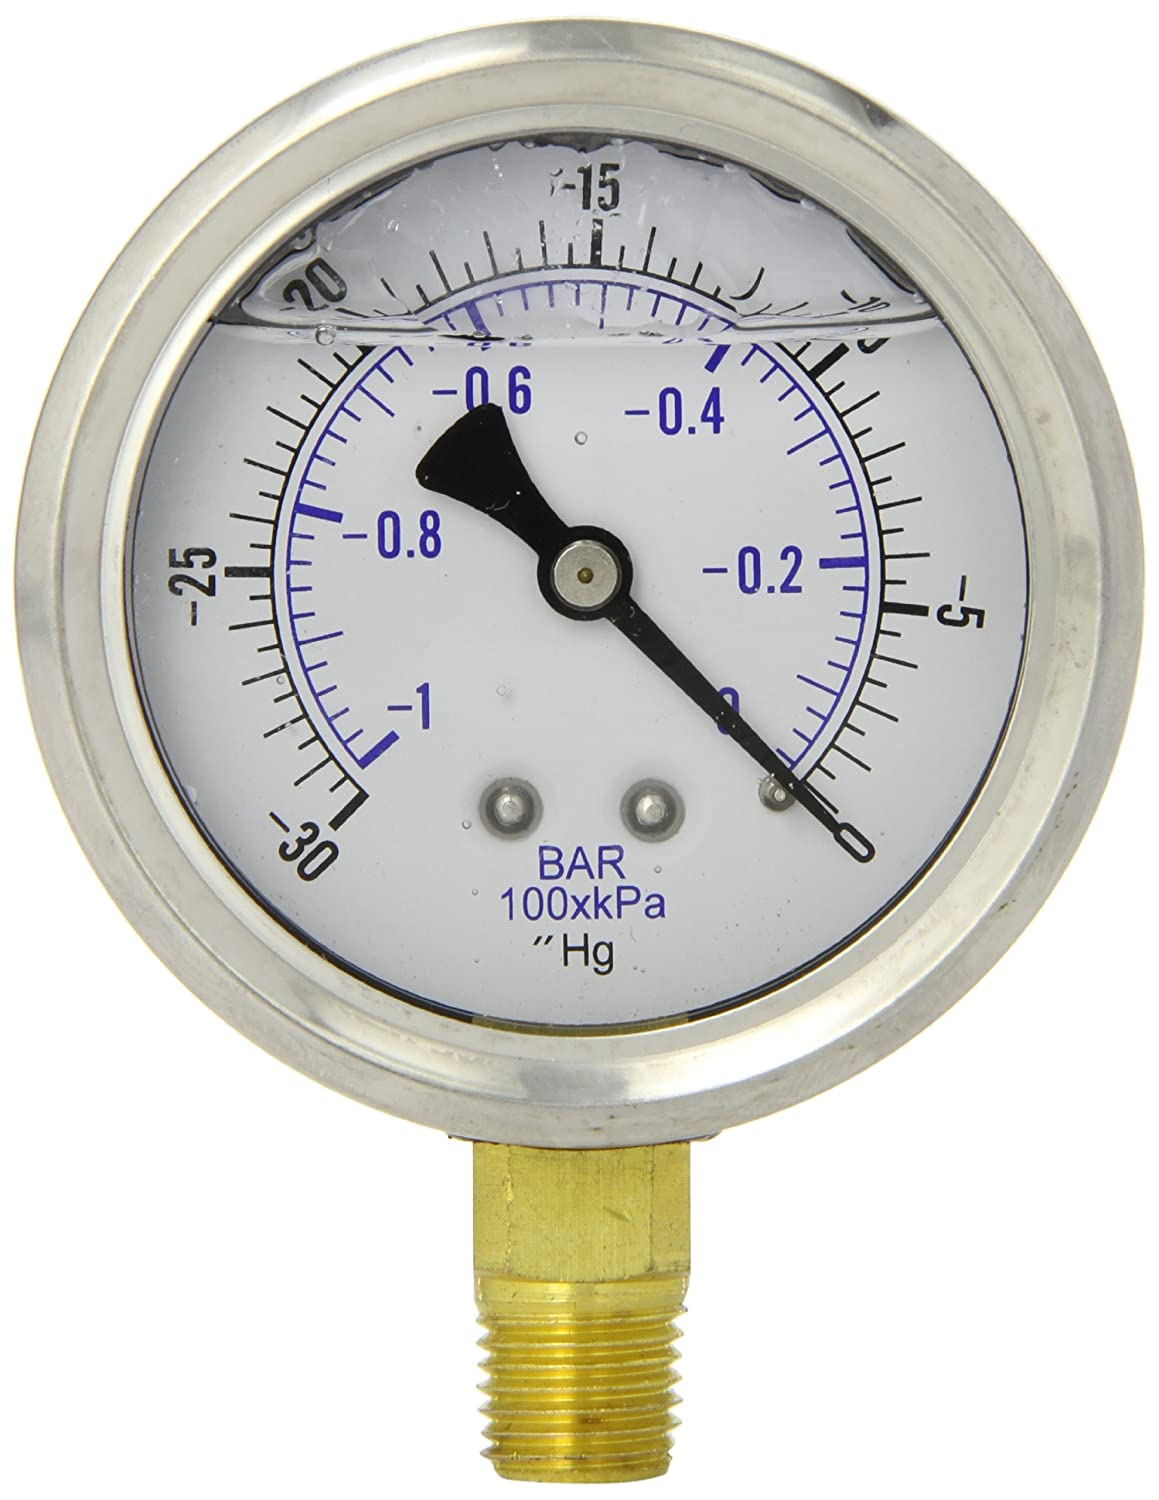 PIC Gauge PRO 201L 254A Glycerin Filled Industrial Bottom Mount Pressure Gauge with Stainless Steel Case Brass Internals Plastic Lens 2 1 2 Dial Size 1 4 Male NPT Connection 30 0 hg Vac psi